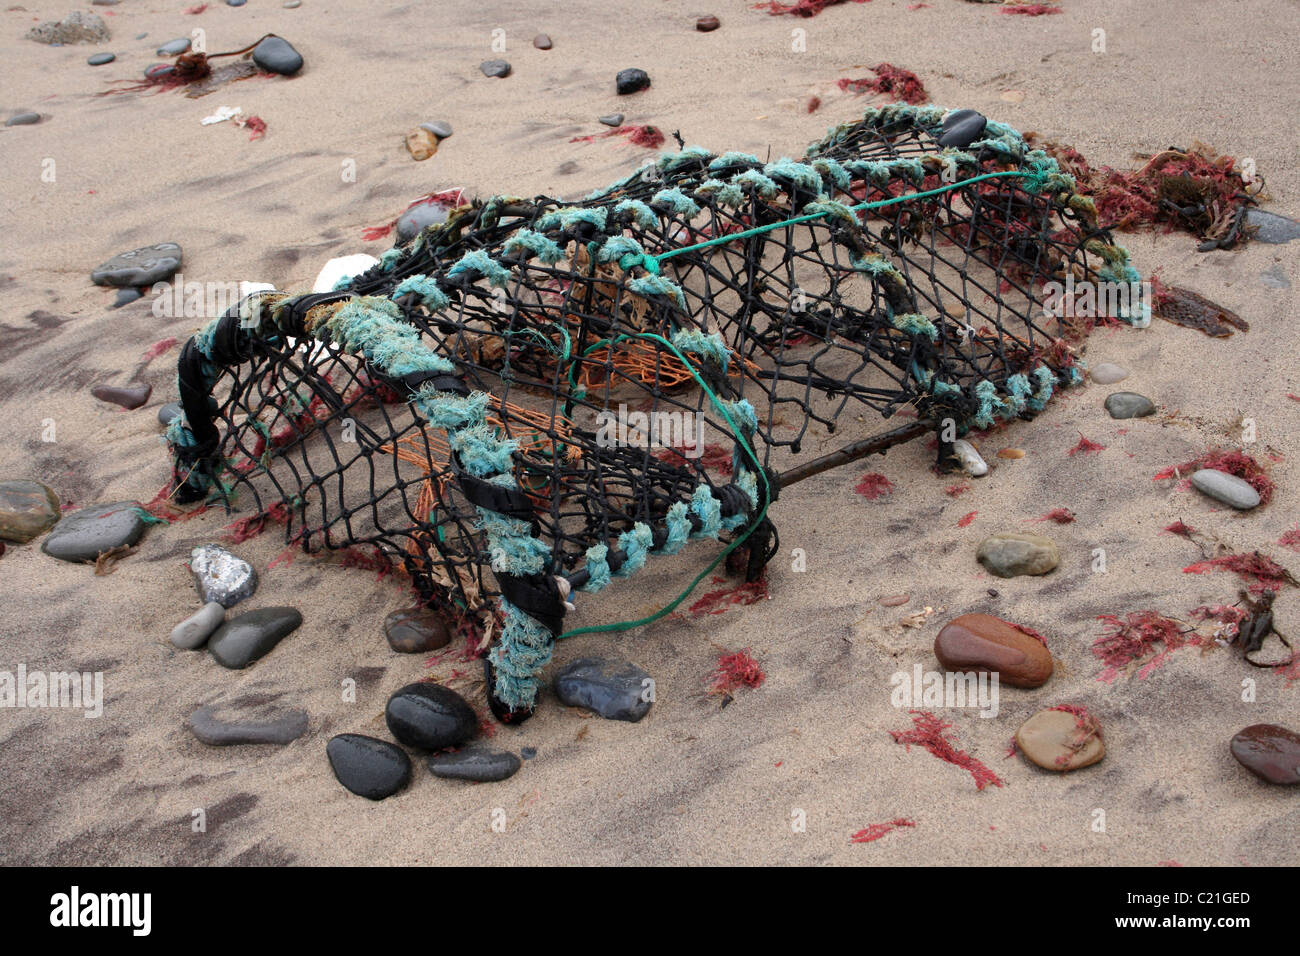 Lobster Pot Embedded In The Sand Taken at Spurn Point, UK Stock Photo